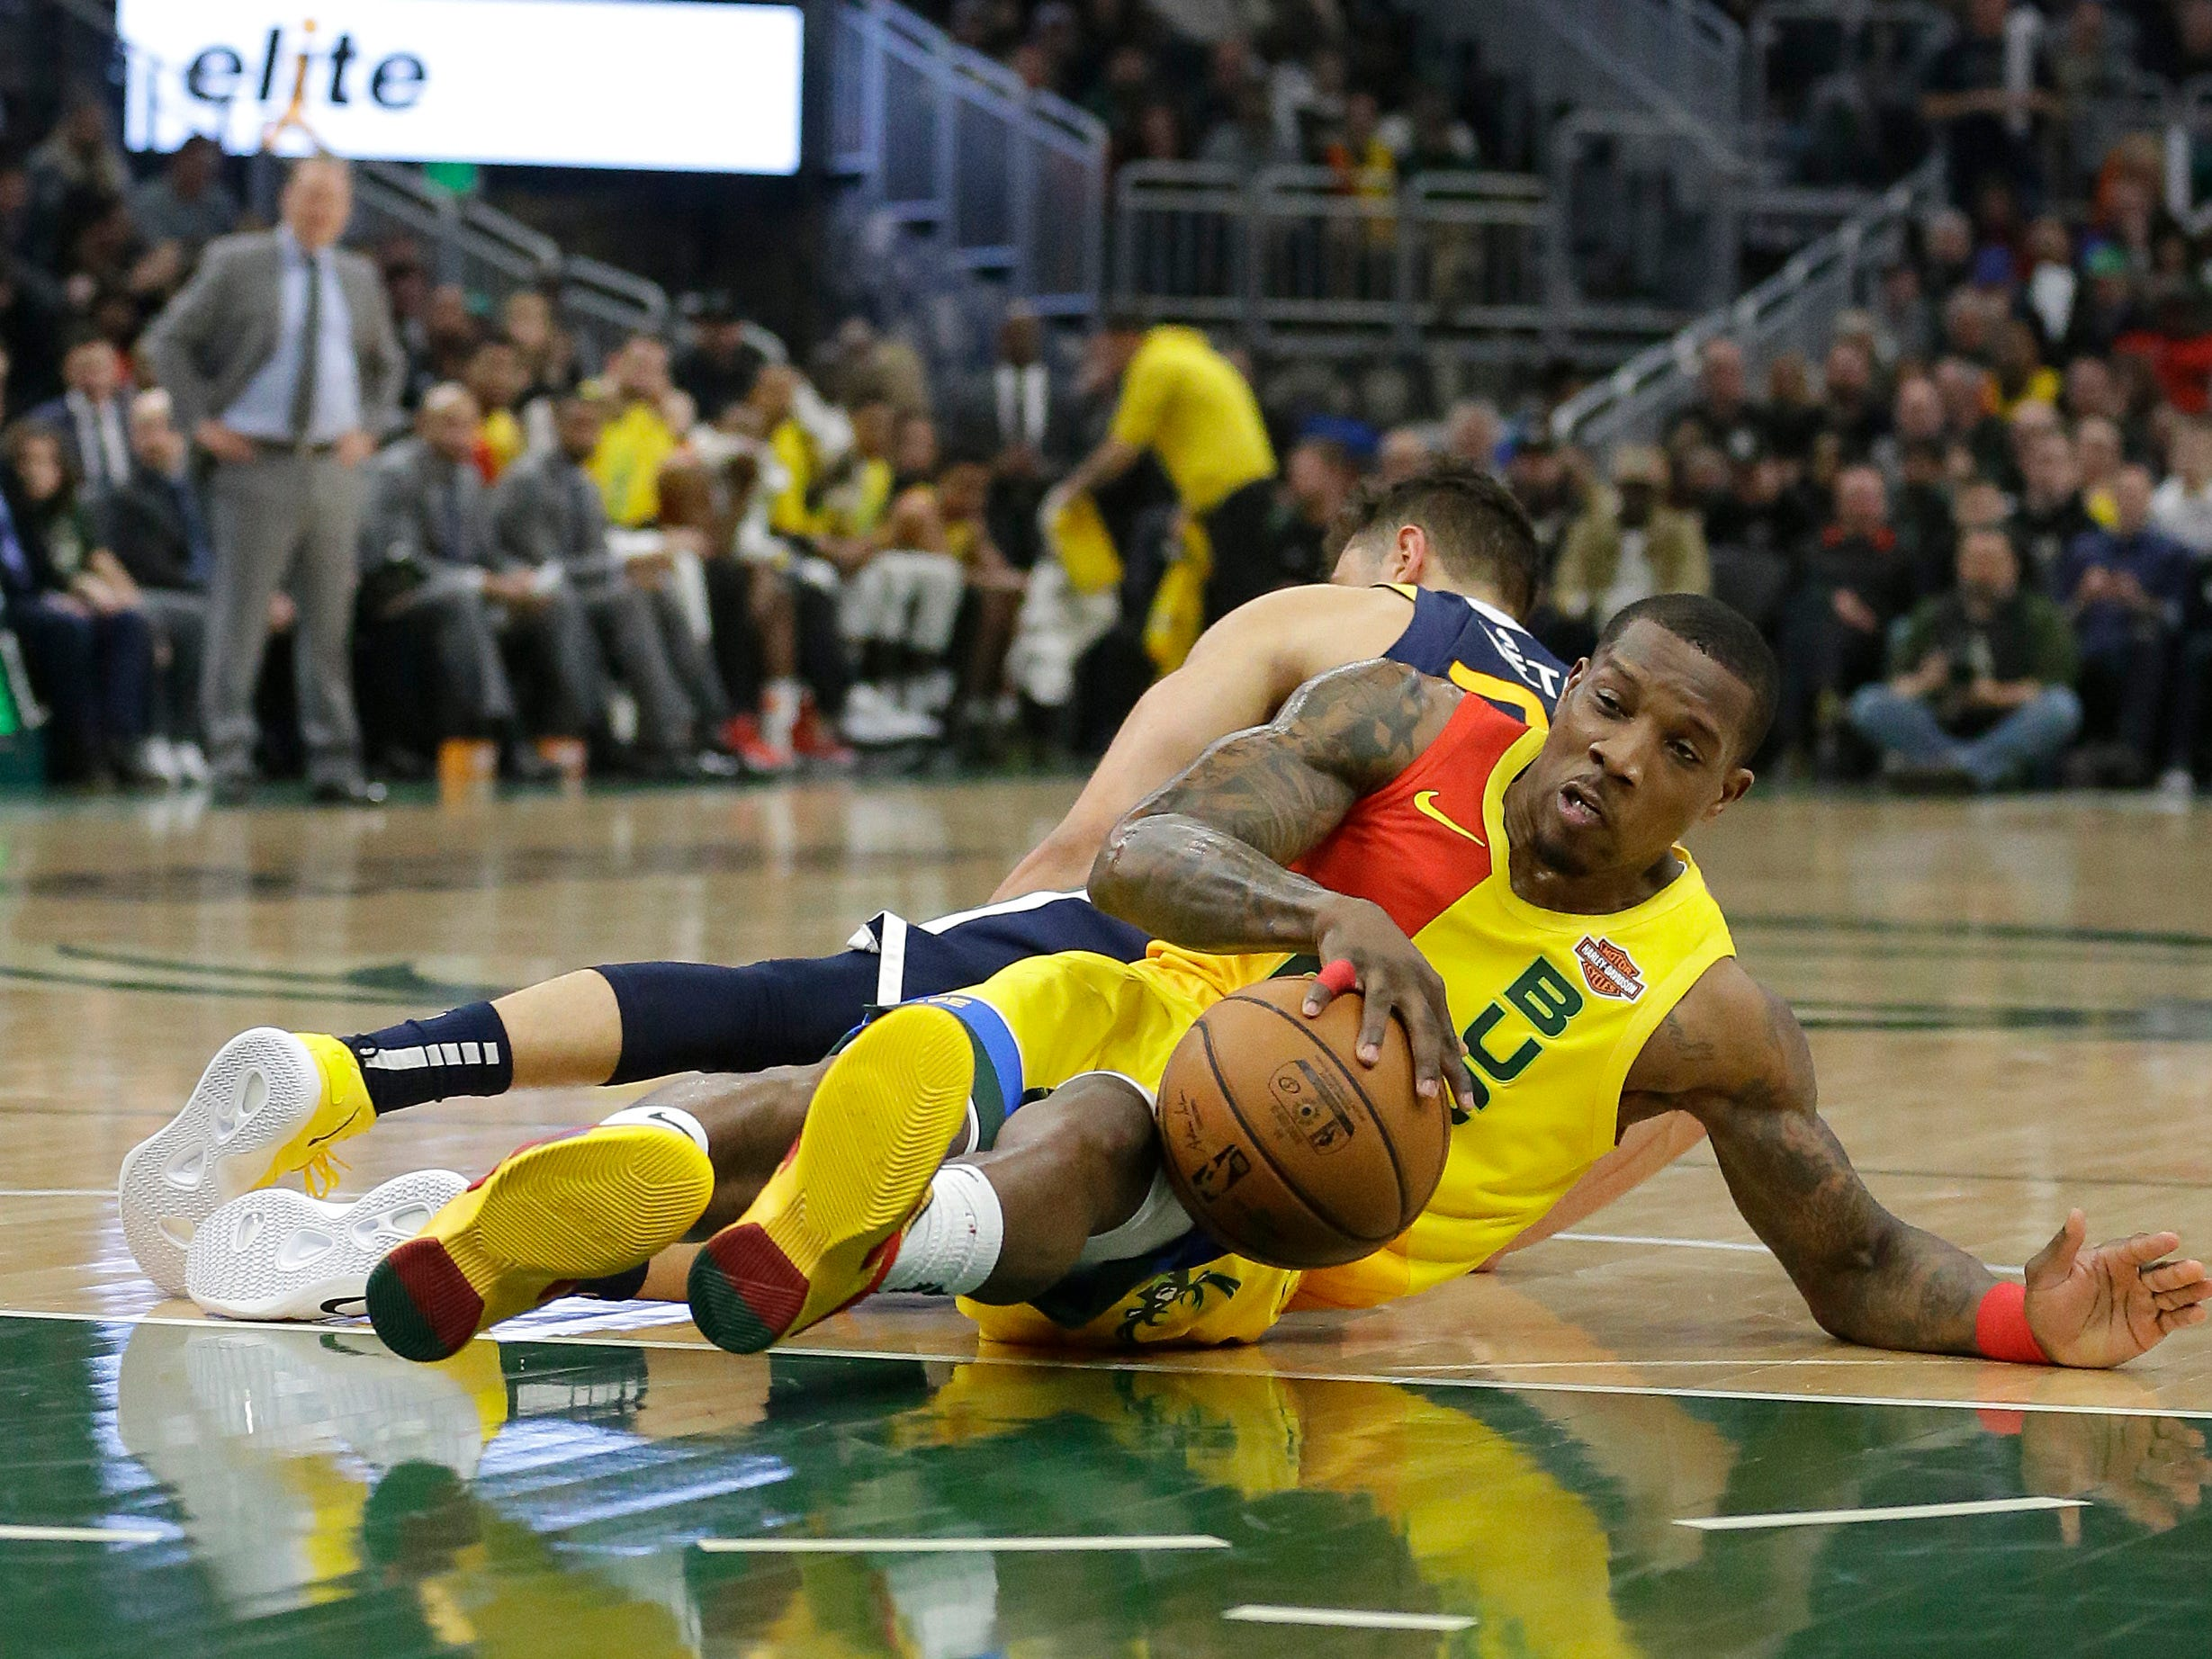 Eric Bledsoe of the Bucks beats Raul Neto of the Jazz to a loose ball during the first half Monday.